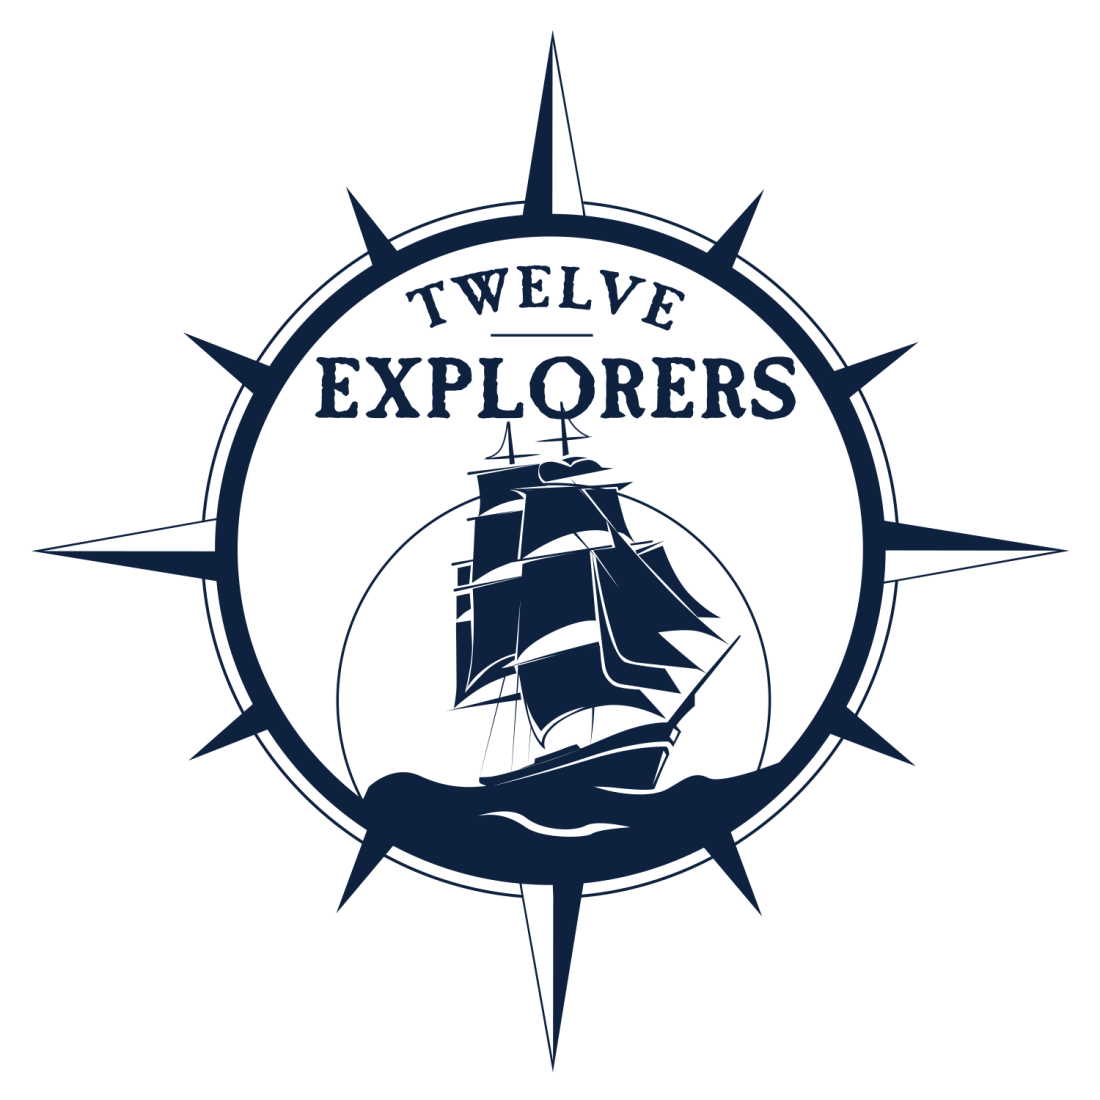 12Explorers-logo-blue-transparent